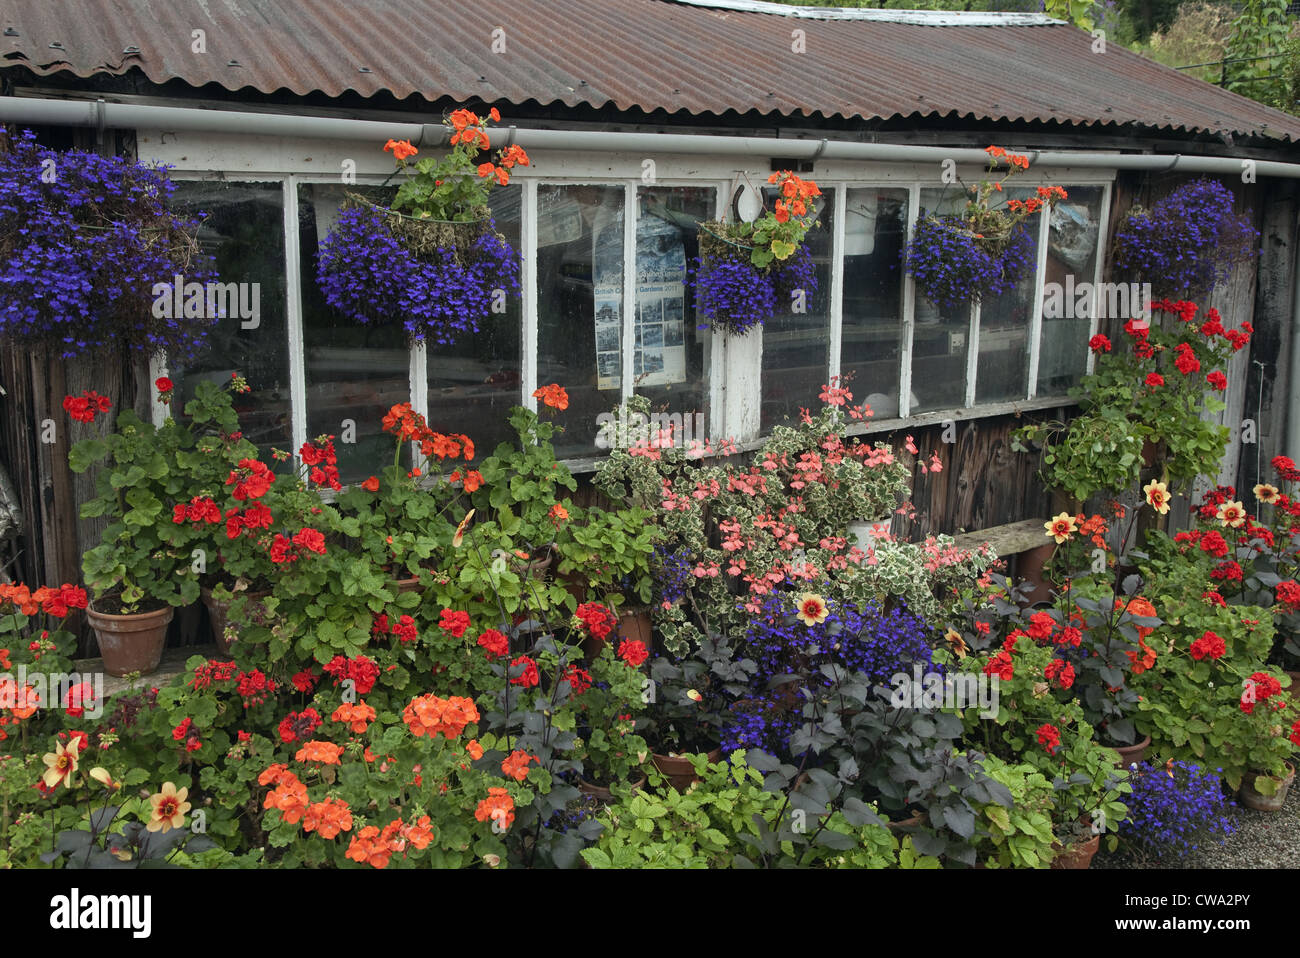 Garden potting shed with hanging baskets and geraniums stock photo garden potting shed with hanging baskets and geraniums workwithnaturefo